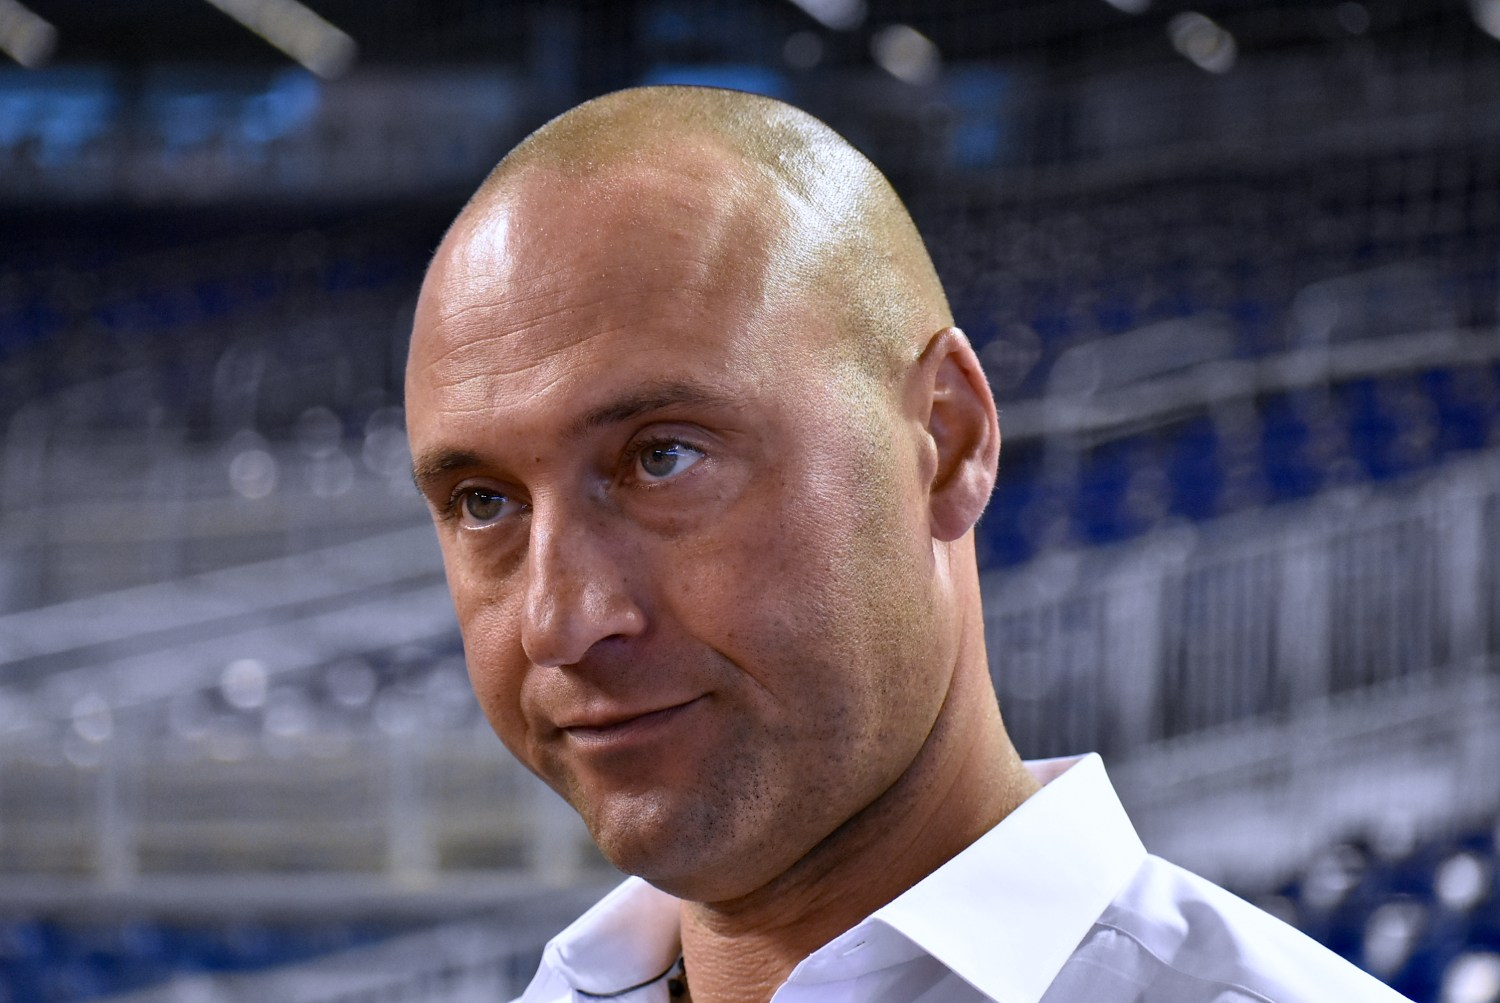 Derek Jeter's actions mean more than hollow words